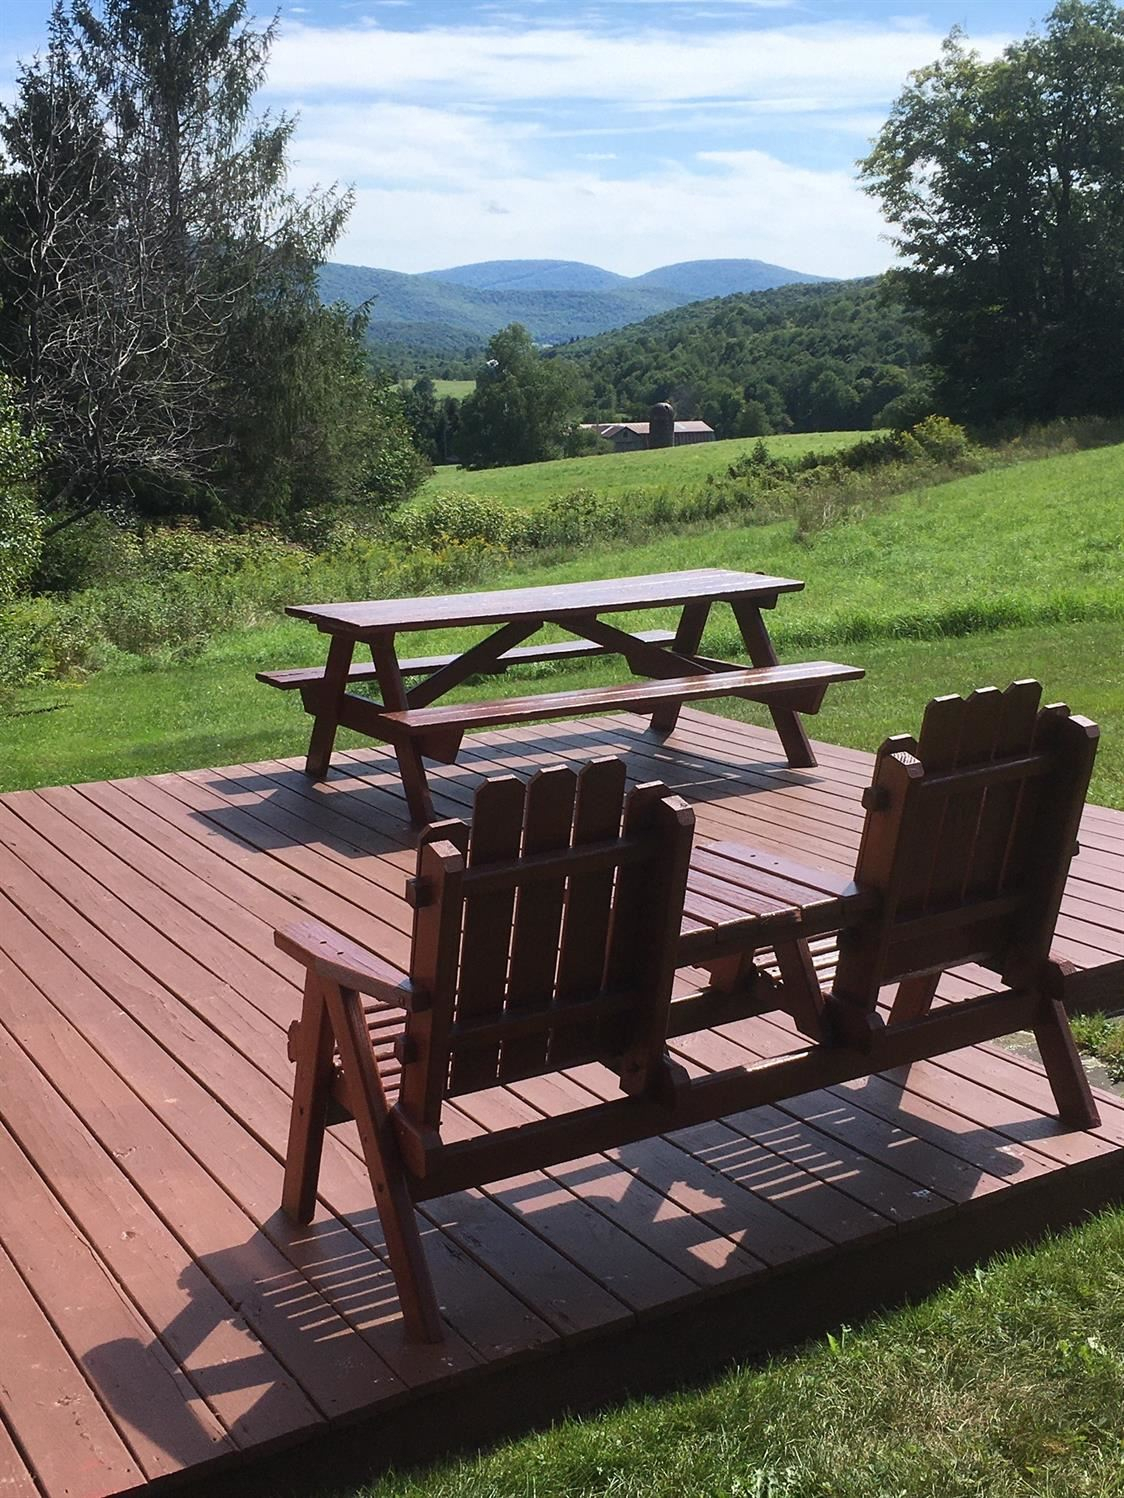 2282 Whiskey Hollow Road, Harpersfield, Ny 13786, Mls #127829 – Howard Hanna With Regard To Harpersfield Wooden Garden Benches (View 22 of 25)